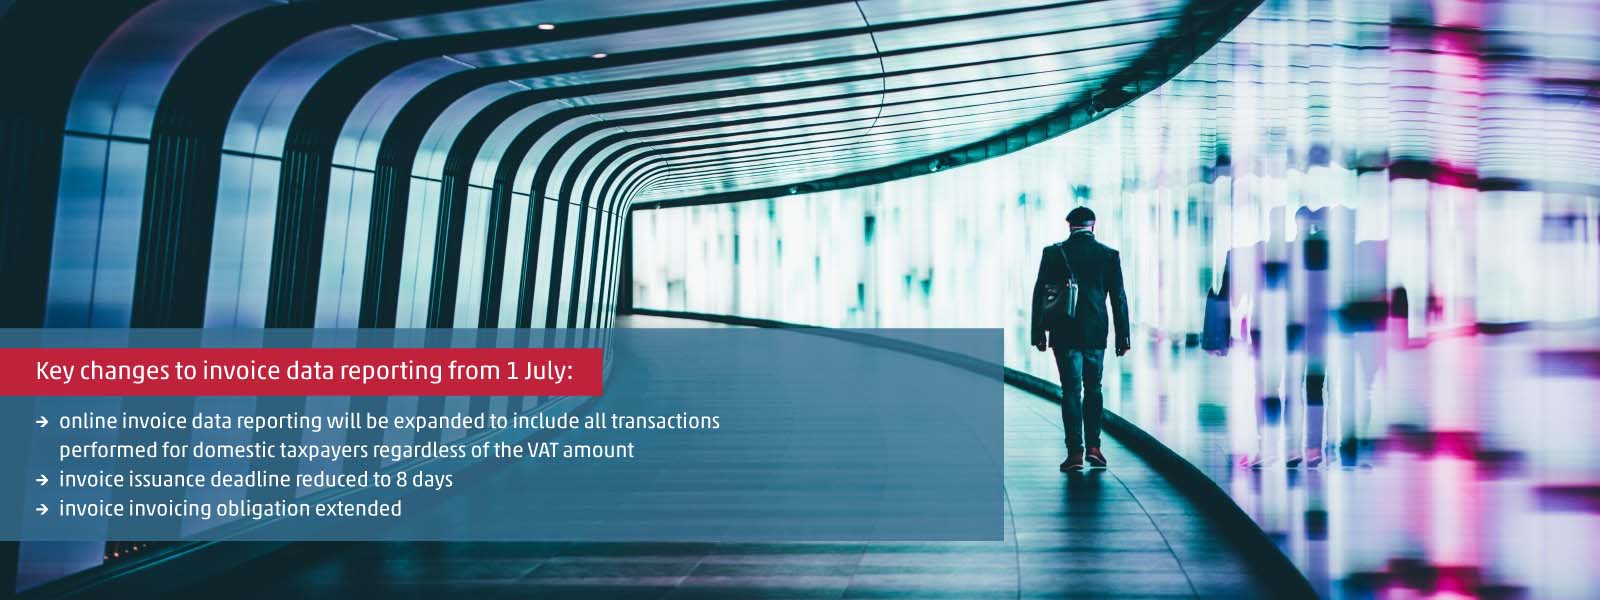 Invoice data reporting still to be expanded from 1 July – no deferment!